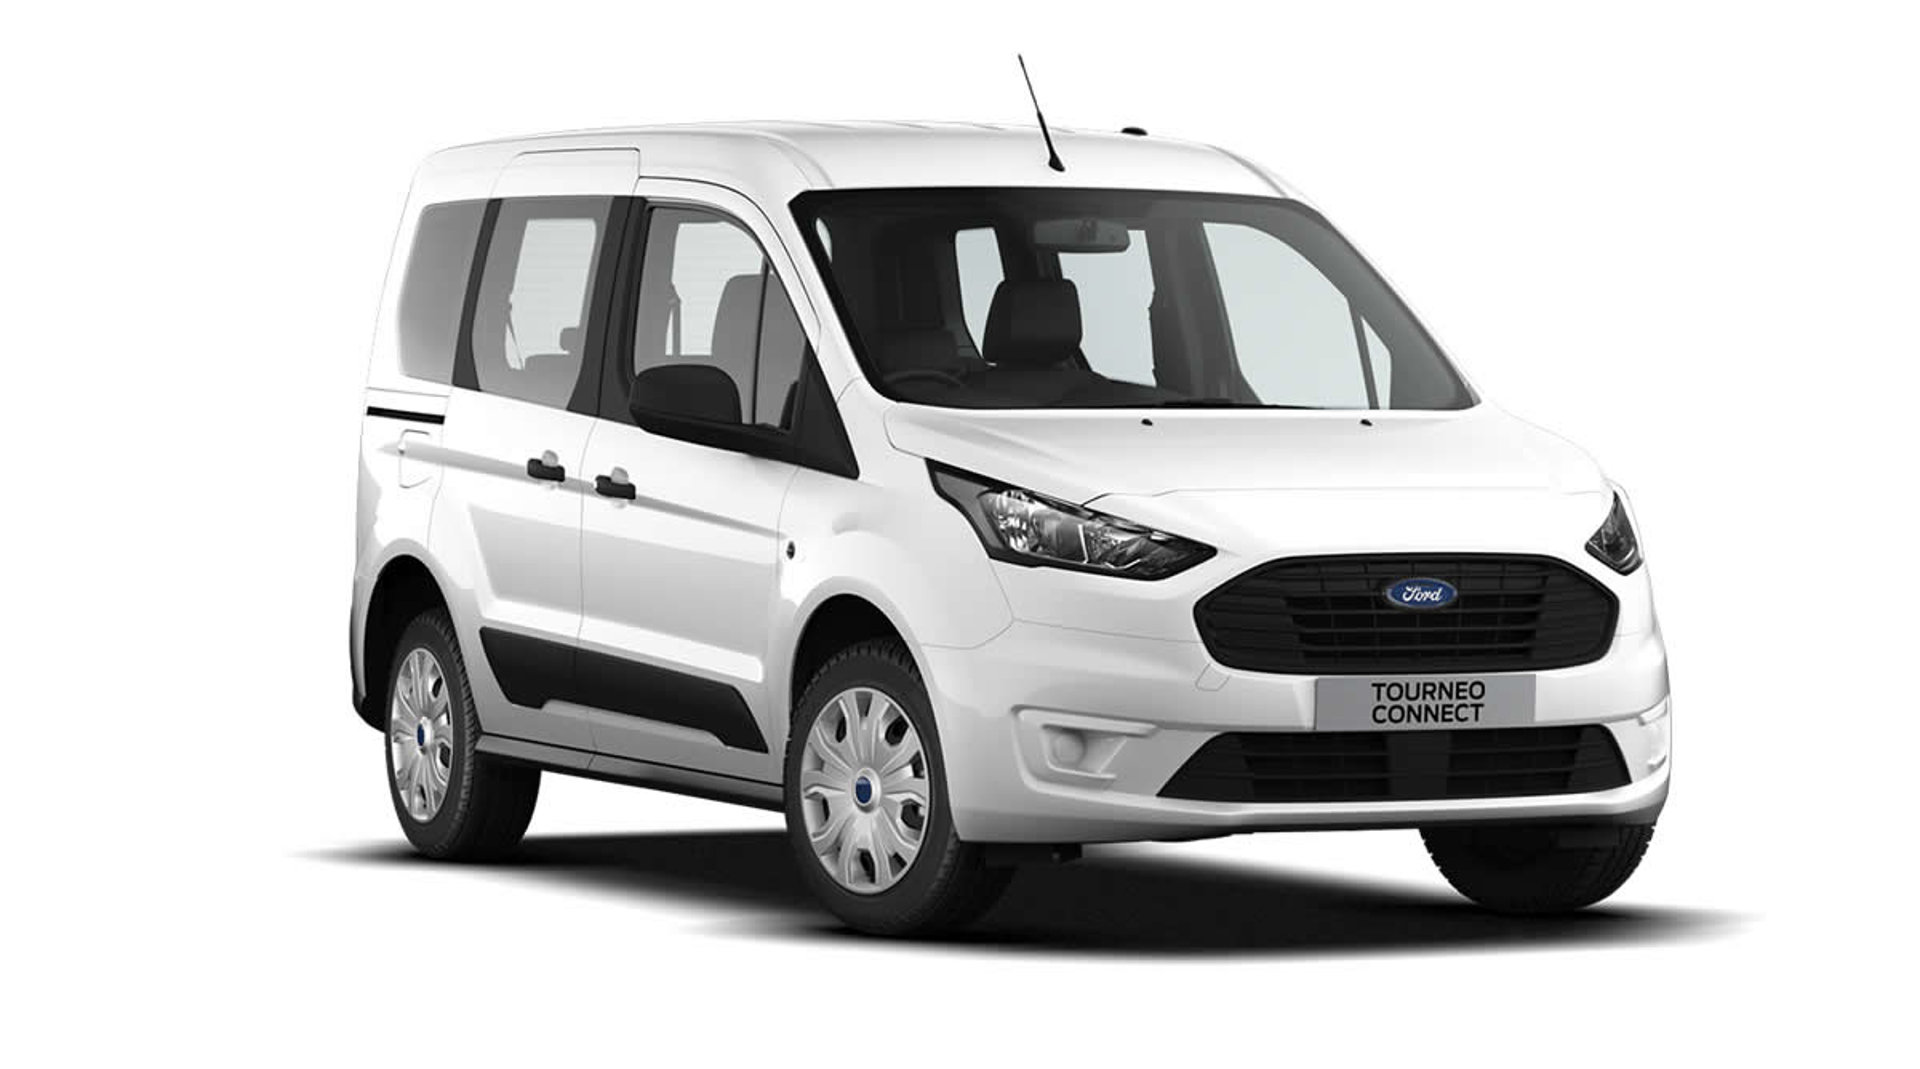 FORD TOURNEO CONNECT - ul. Hetmańska 31, Elbląg